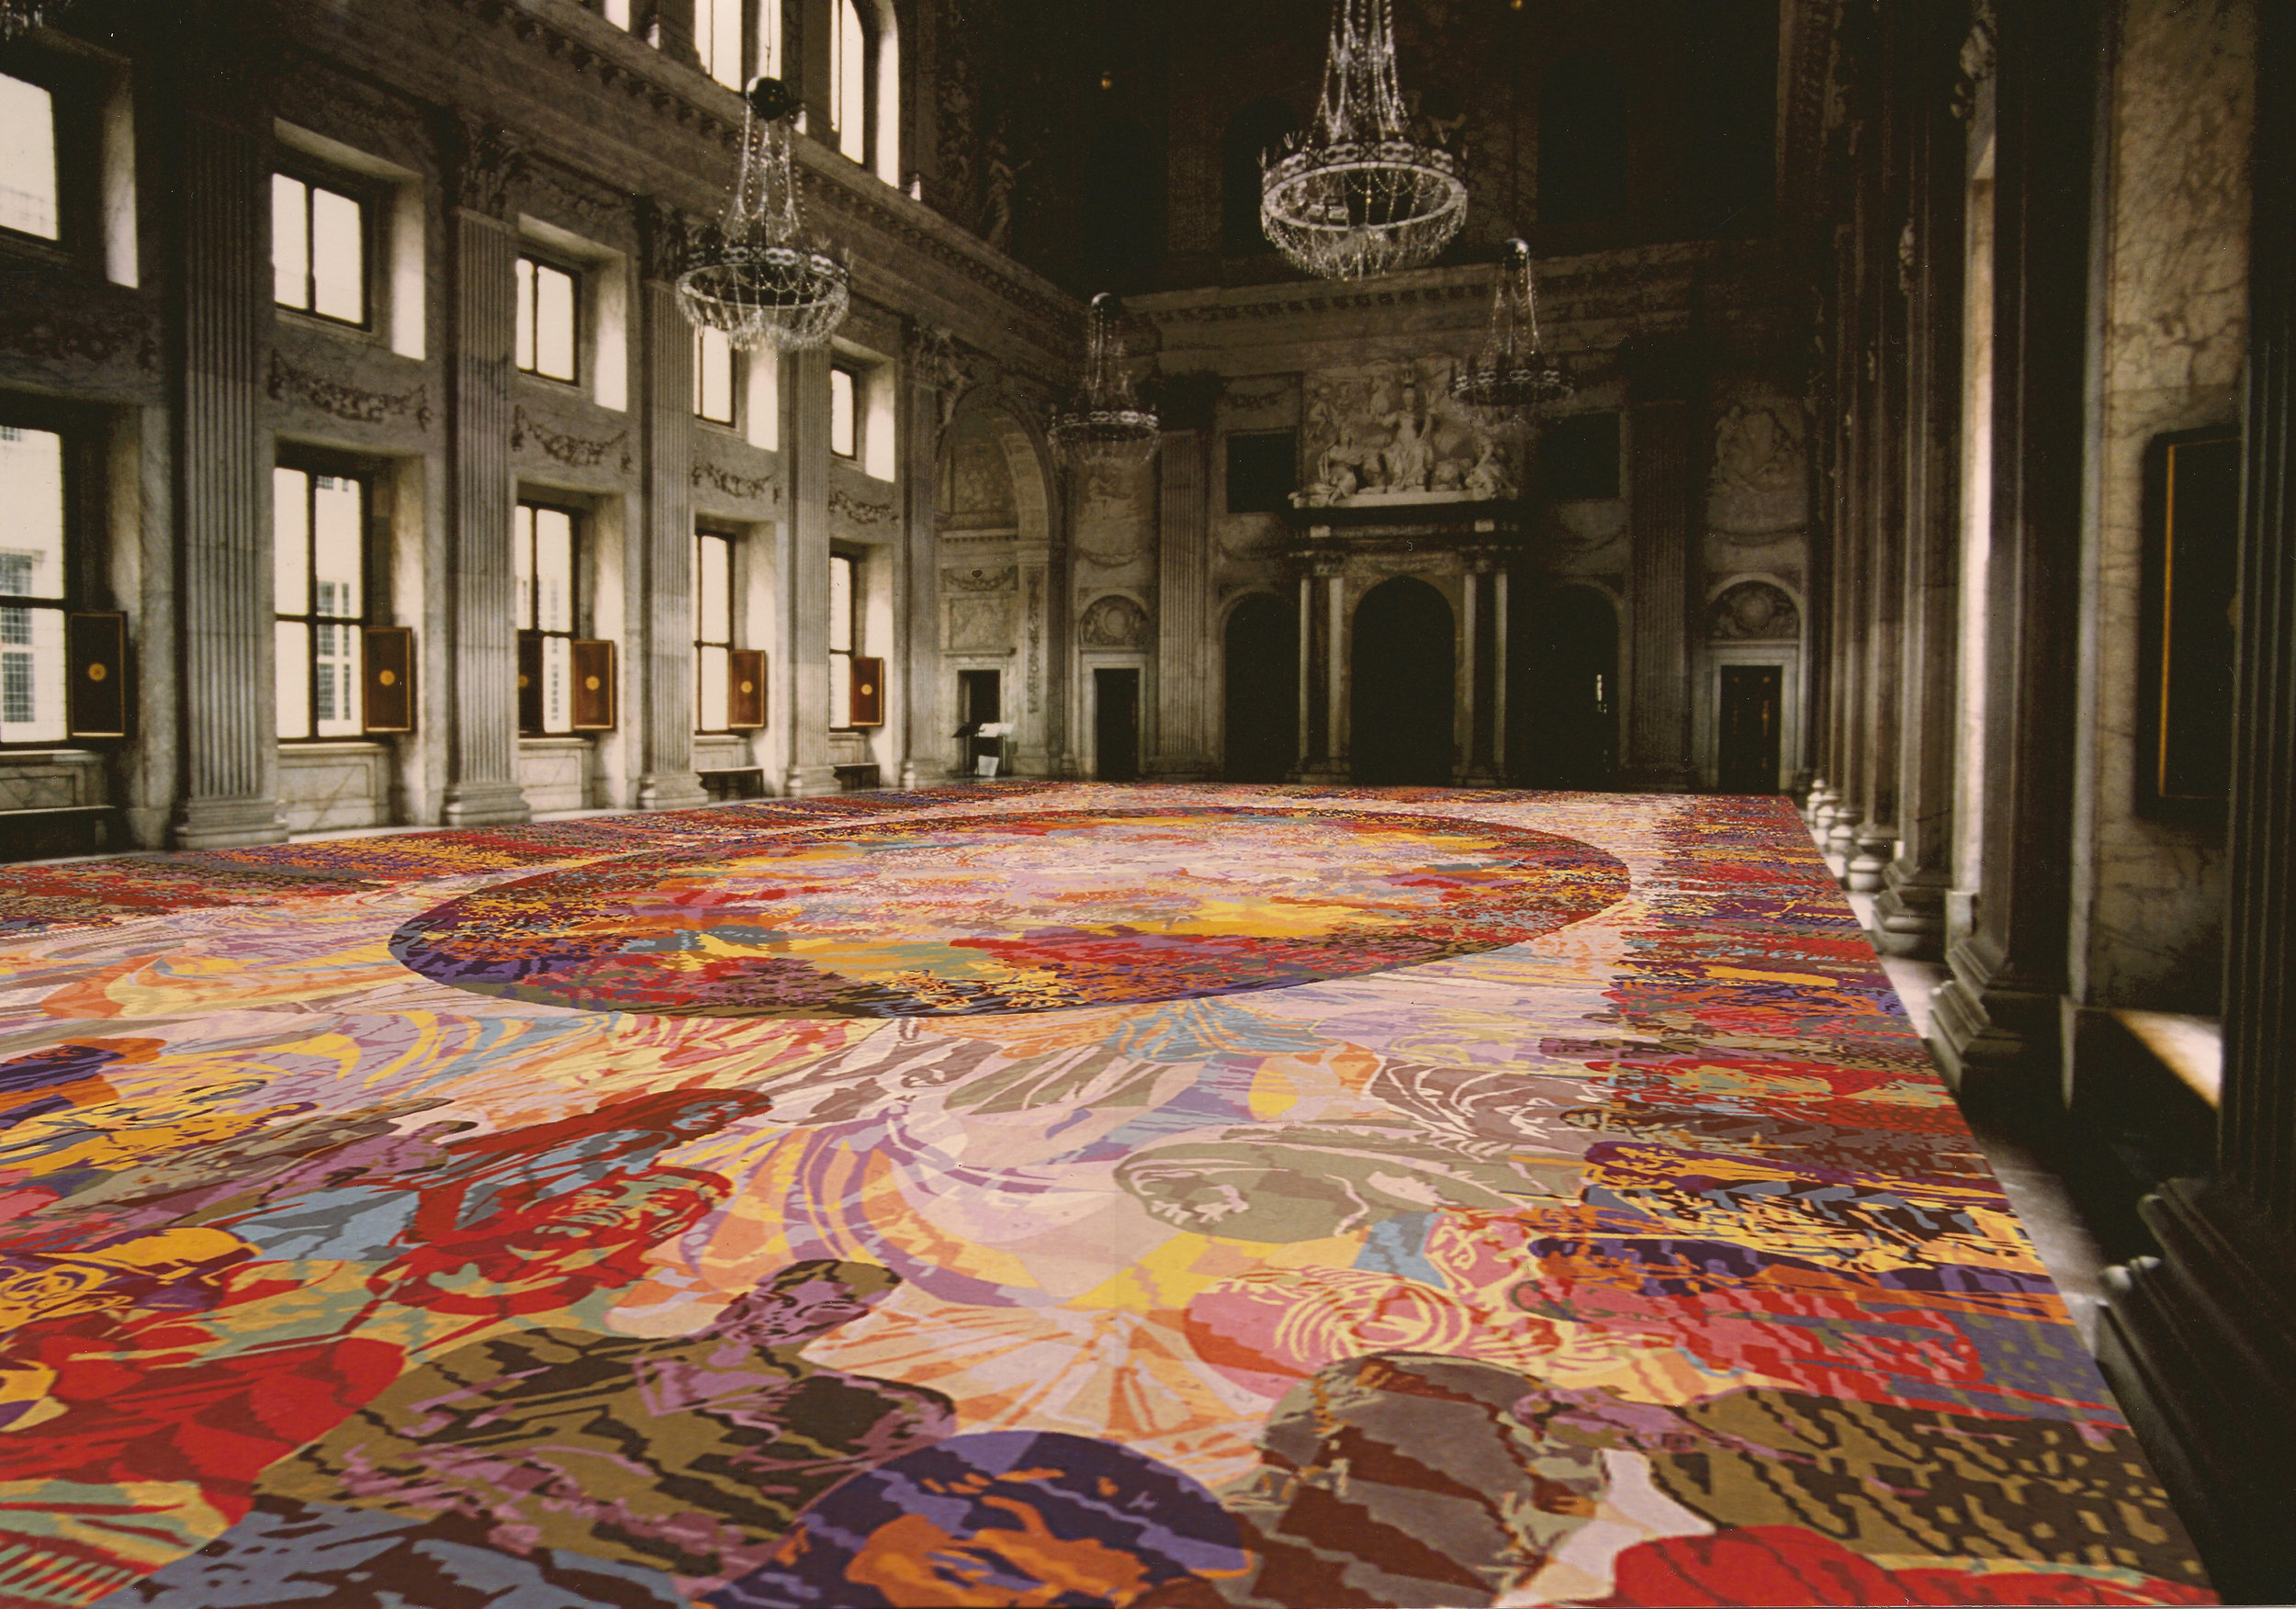 Artist impression carpet for the Citizen Hall